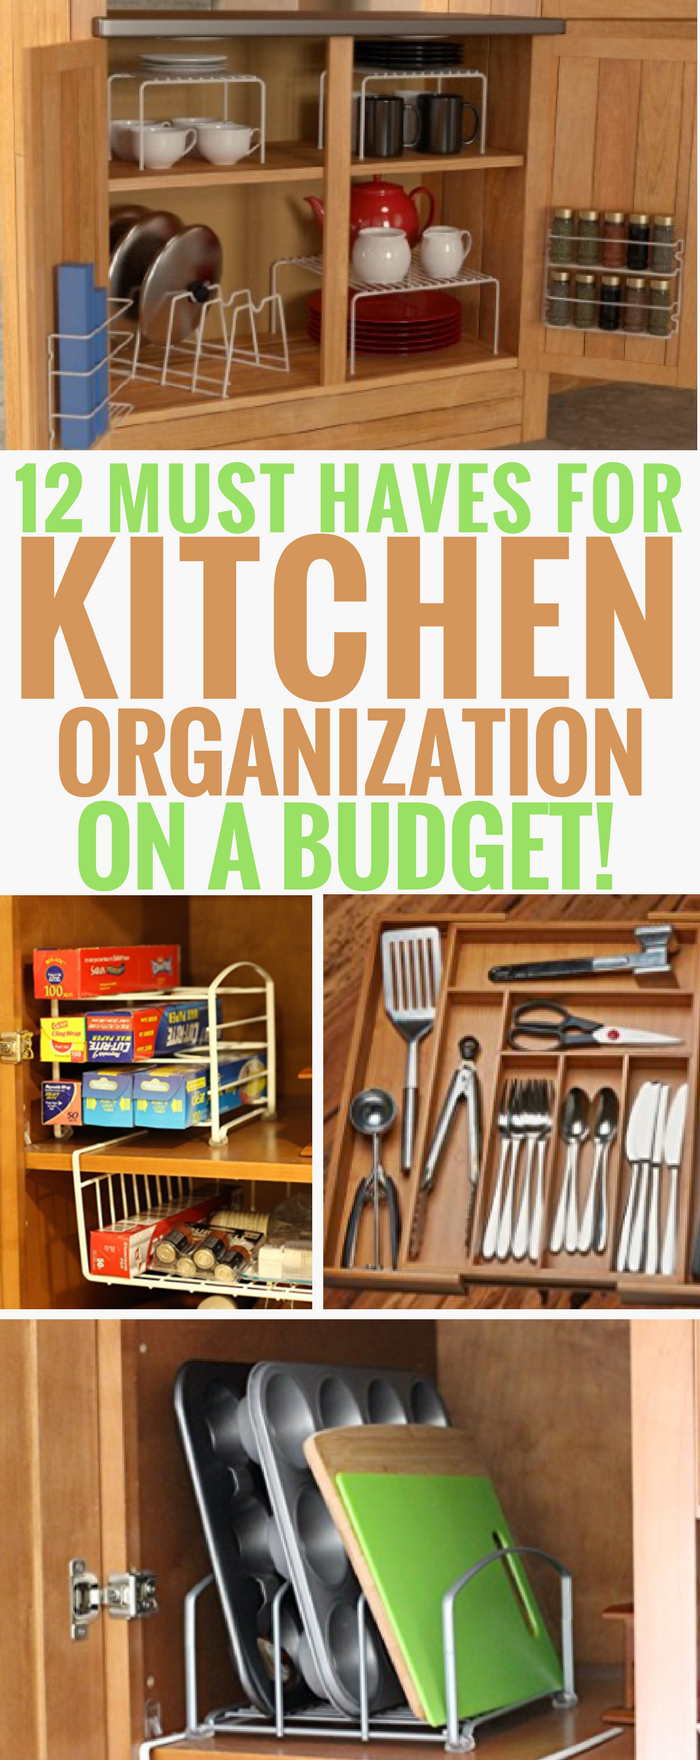 12 Must Have Products for Kitchen Organization On A Budget ...